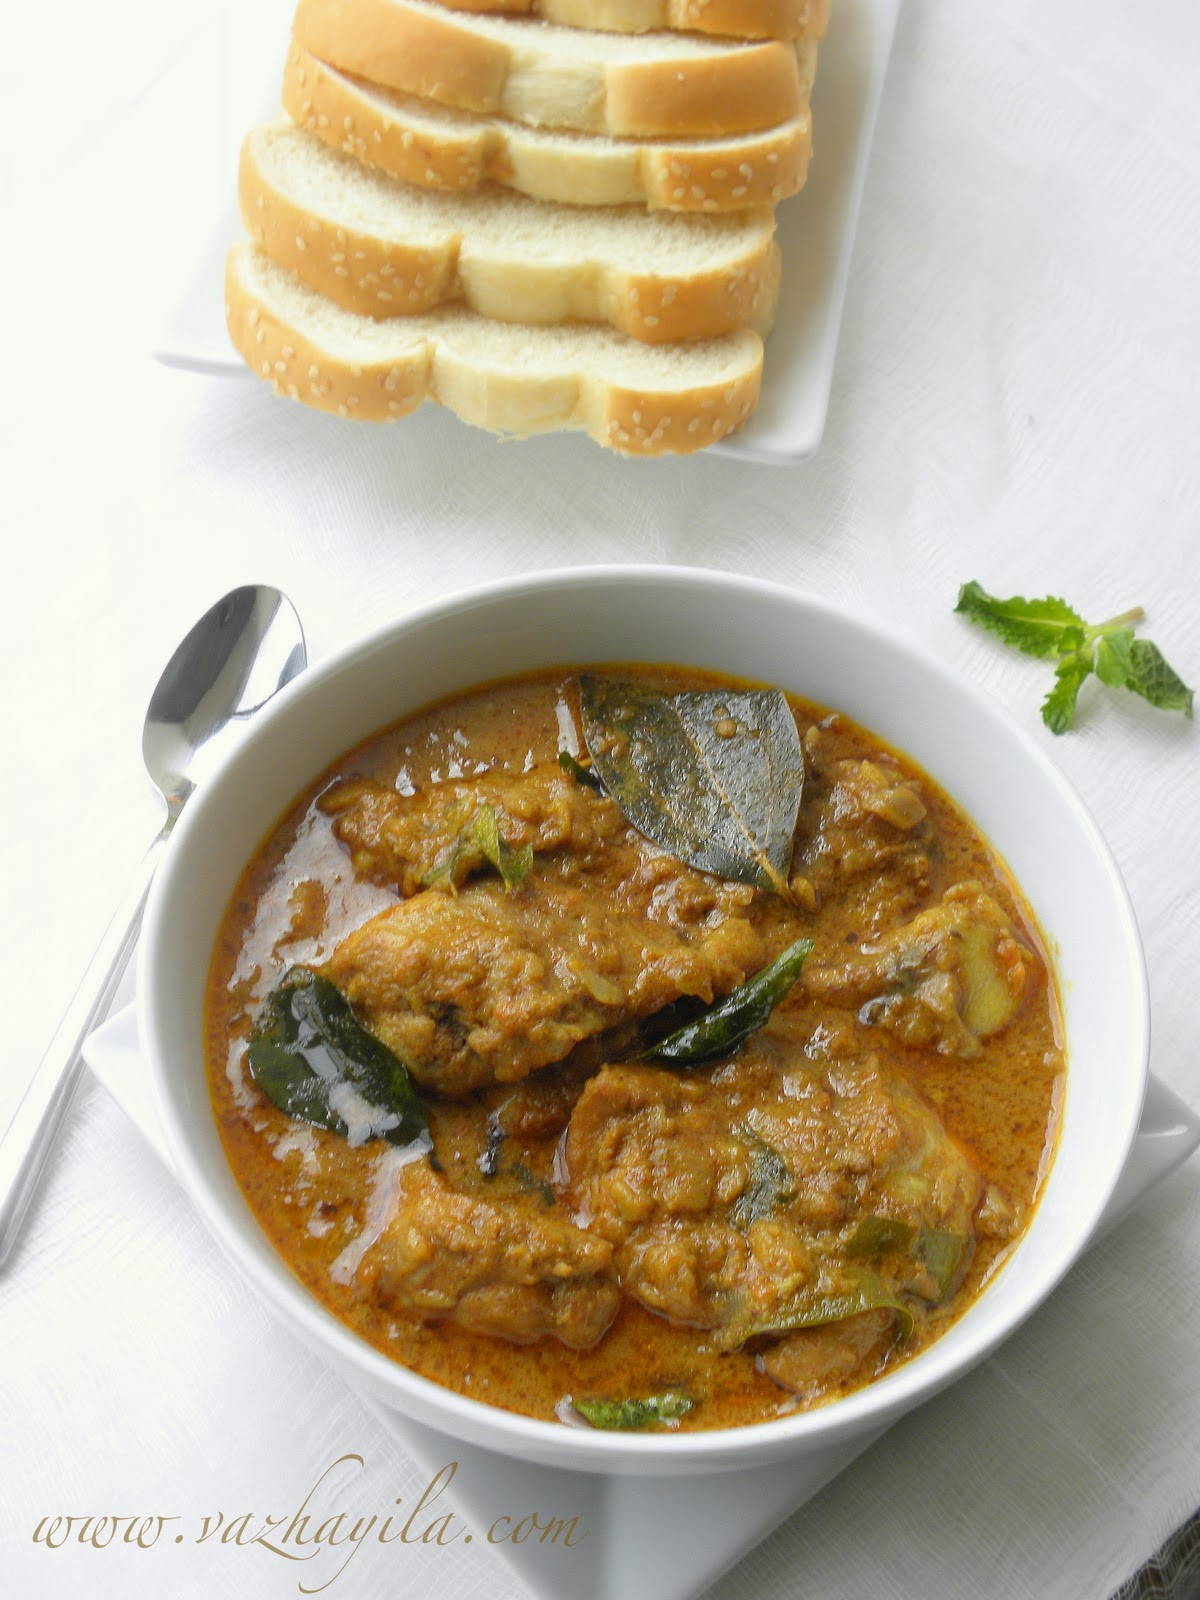 Vazhayila.com: Chicken curry with coconut milk